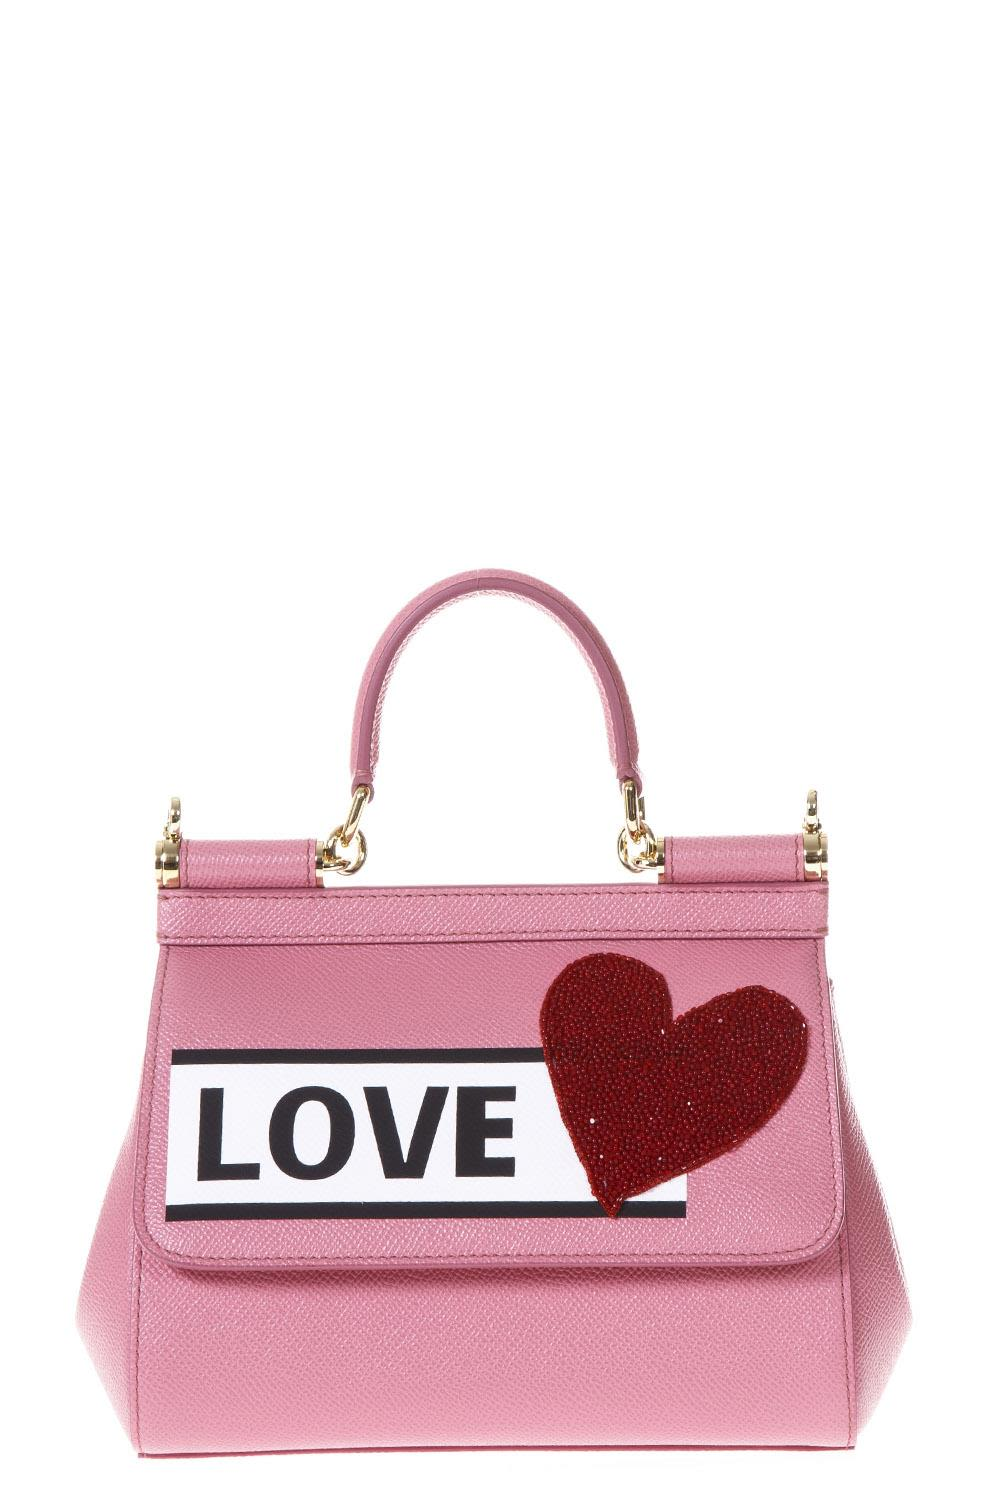 DOLCE AND GABBANA PINK LOVE SICILY BAG